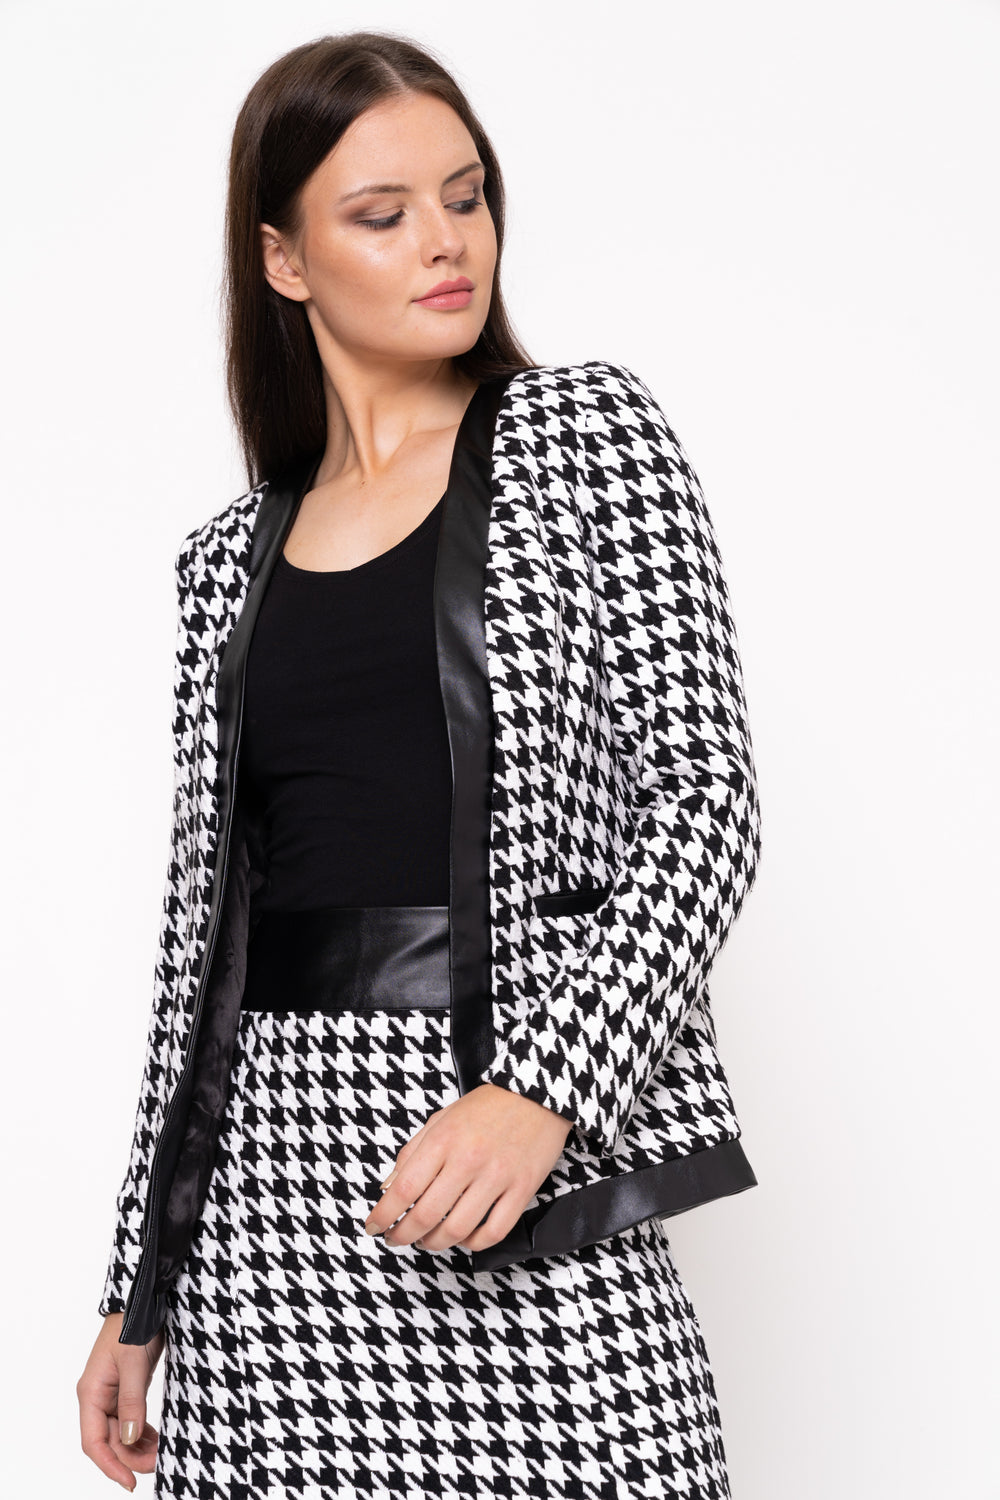 Modest Houndstooth Jacket In Black And White Long sleeve with Binding